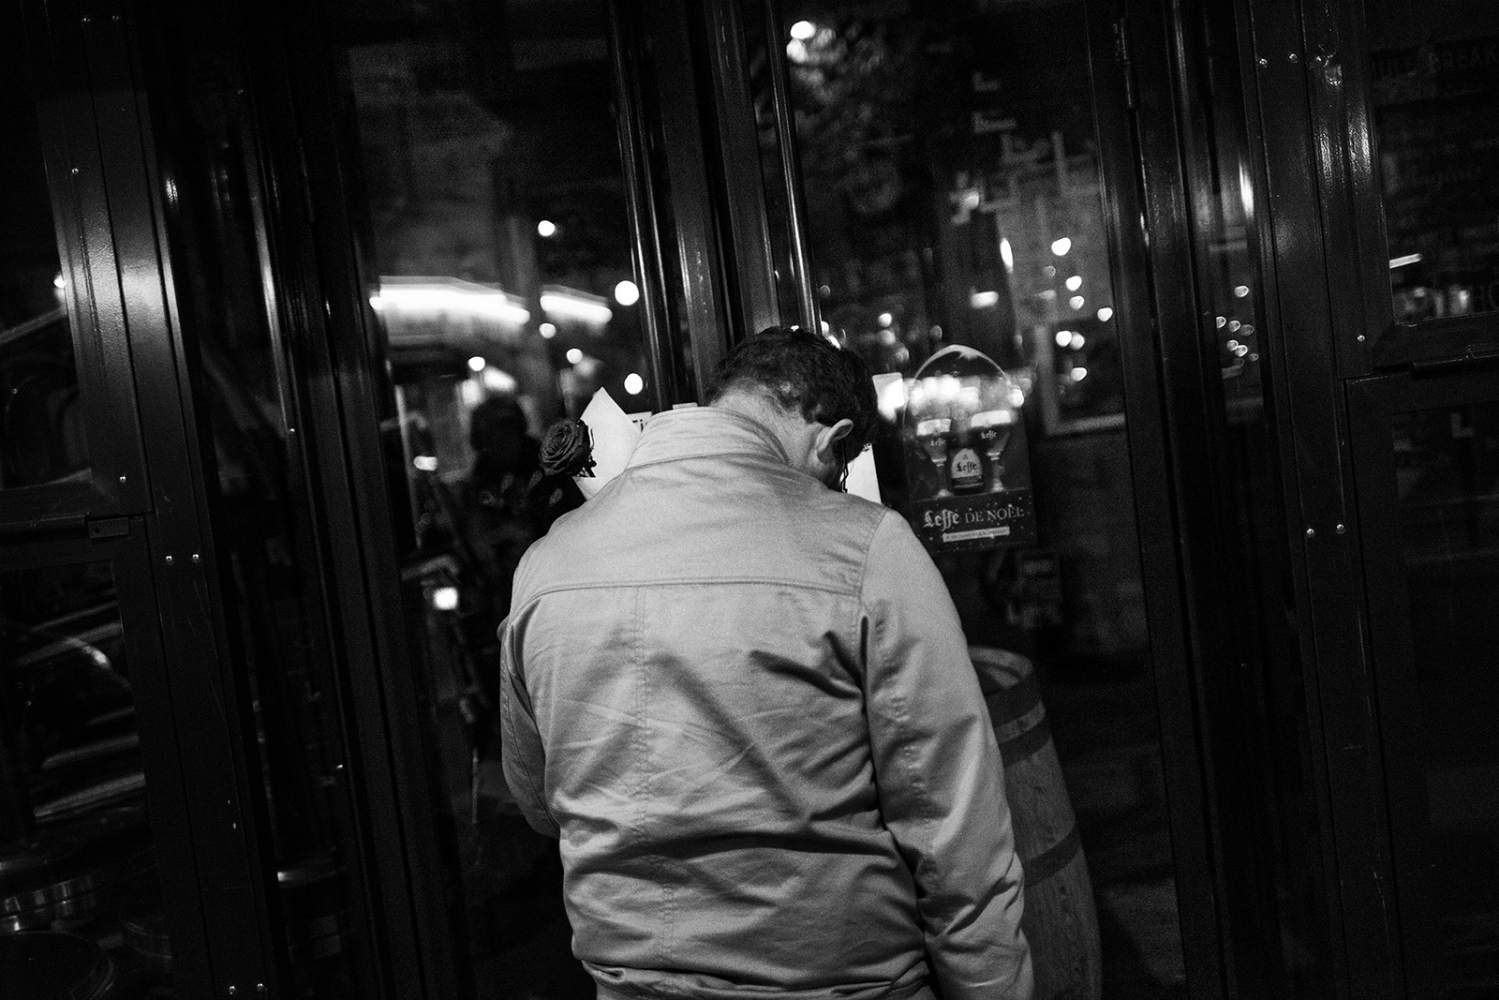 Man lay a rose at the entrance of the Brasserie Comptoir Voltaire.Paris, France, Place de la Republique. 14/11/2015. The aftermath of the terrorism attacks in Paris on 13/11/2015. At approximately 21:40, on the boulevard Voltaire in the 11th arrondissement, near the place de la Nation, a man sat down in the Comptoir Voltaire cafÈ and placed an order before detonating his suicide vest, killing himself and injuring fifteen people, one of them seriously.